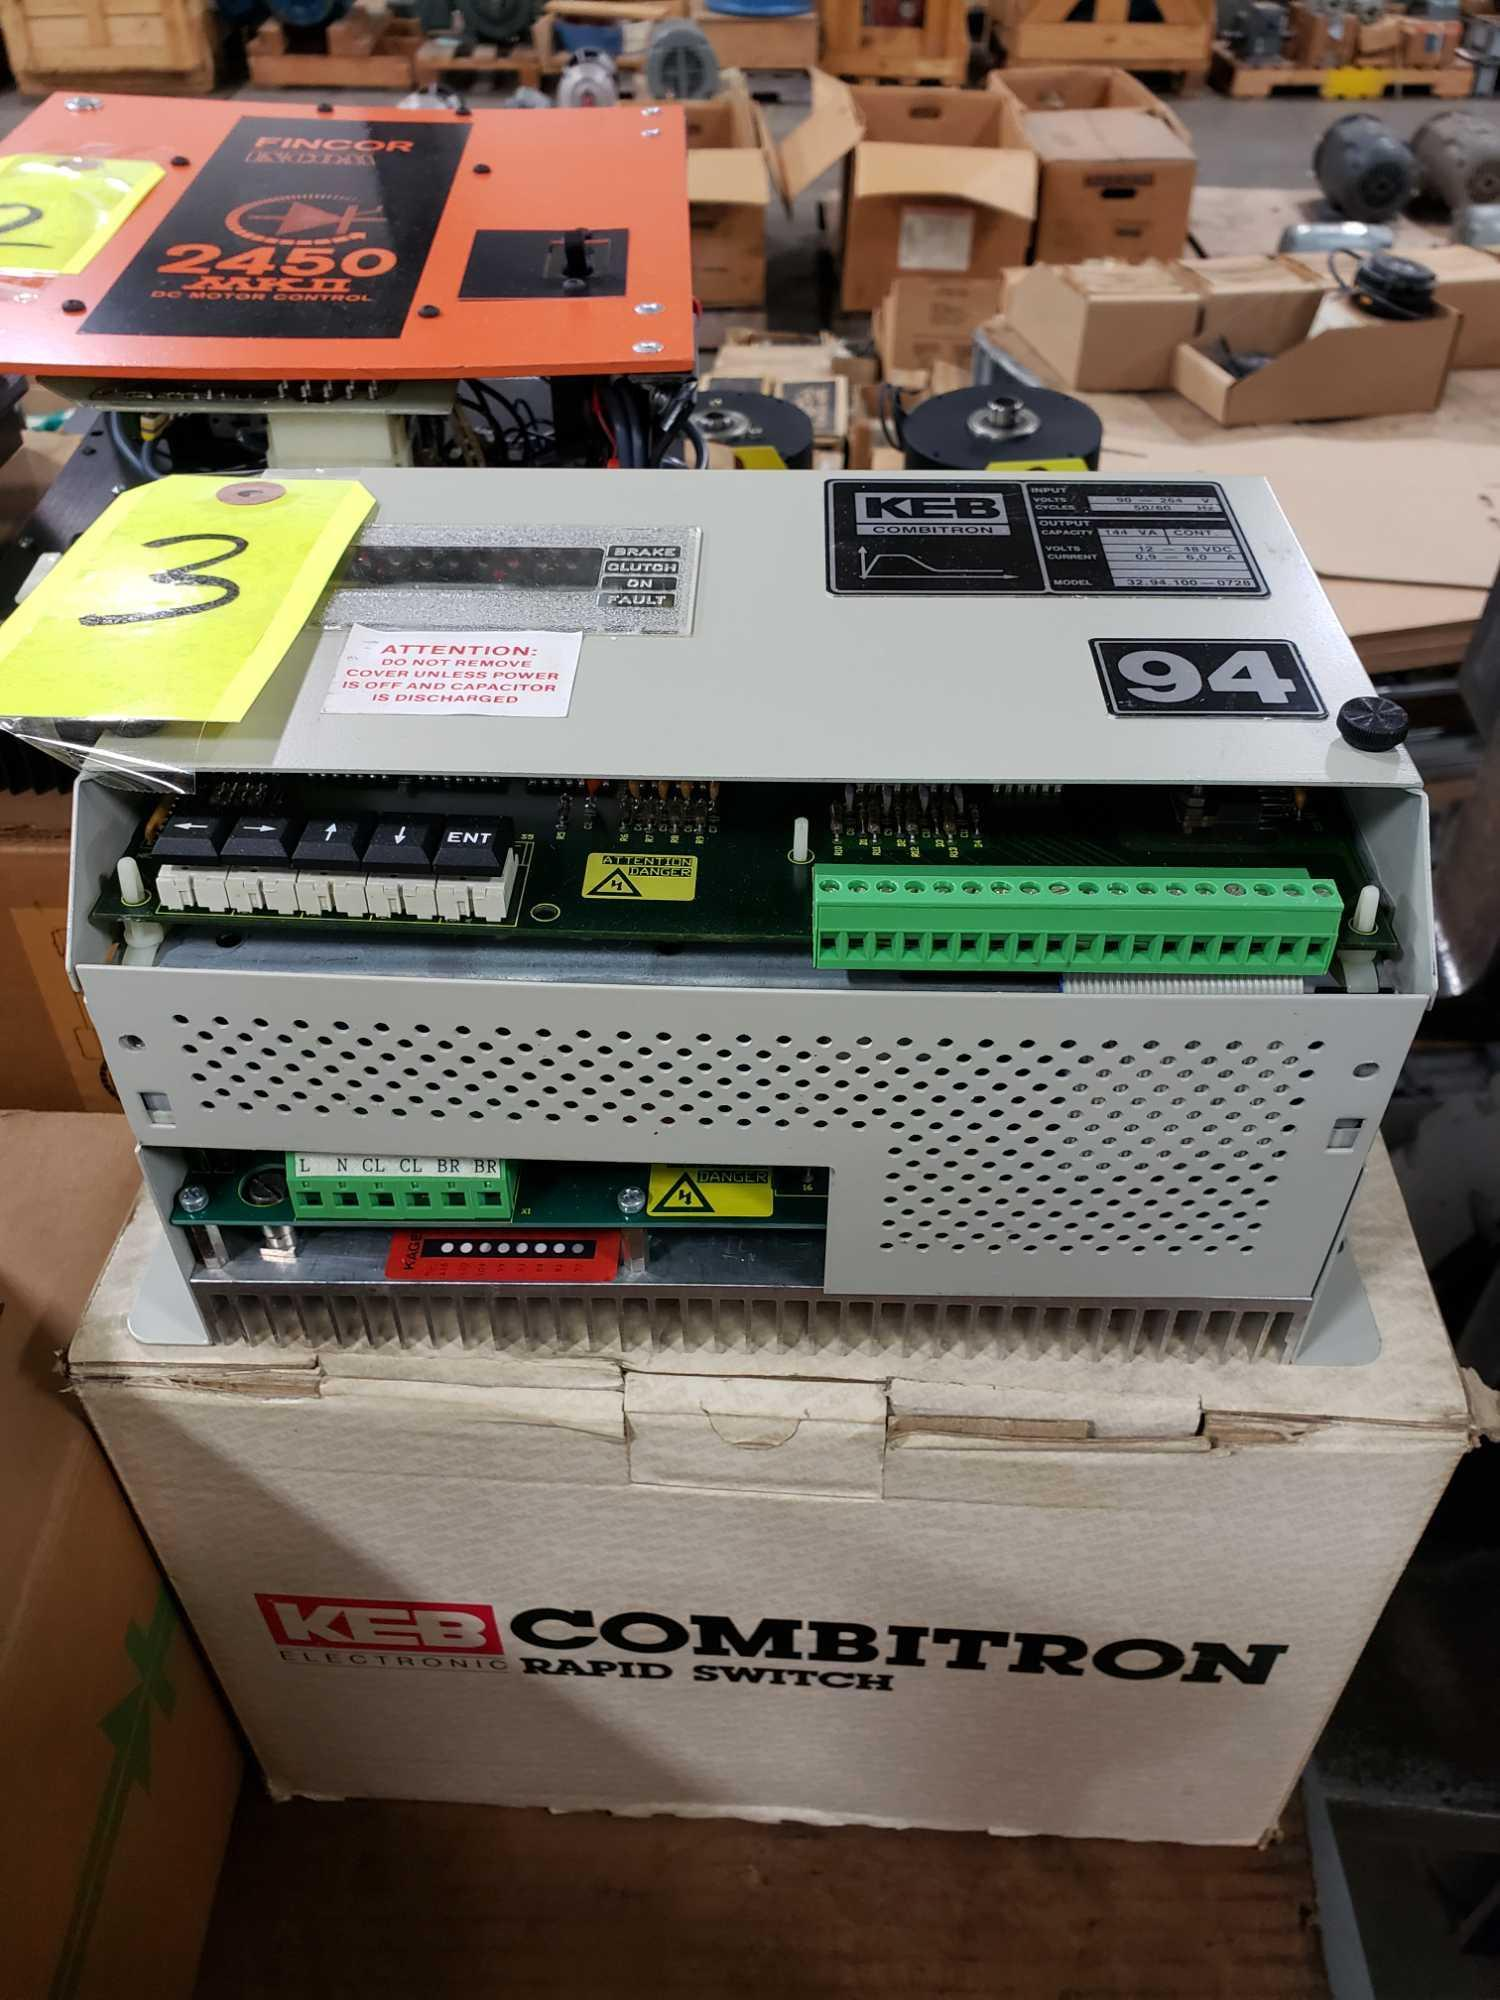 KEB Combitron drive model 32.94.100-0728. 90-264v input, 12-48vdc output. New in box.